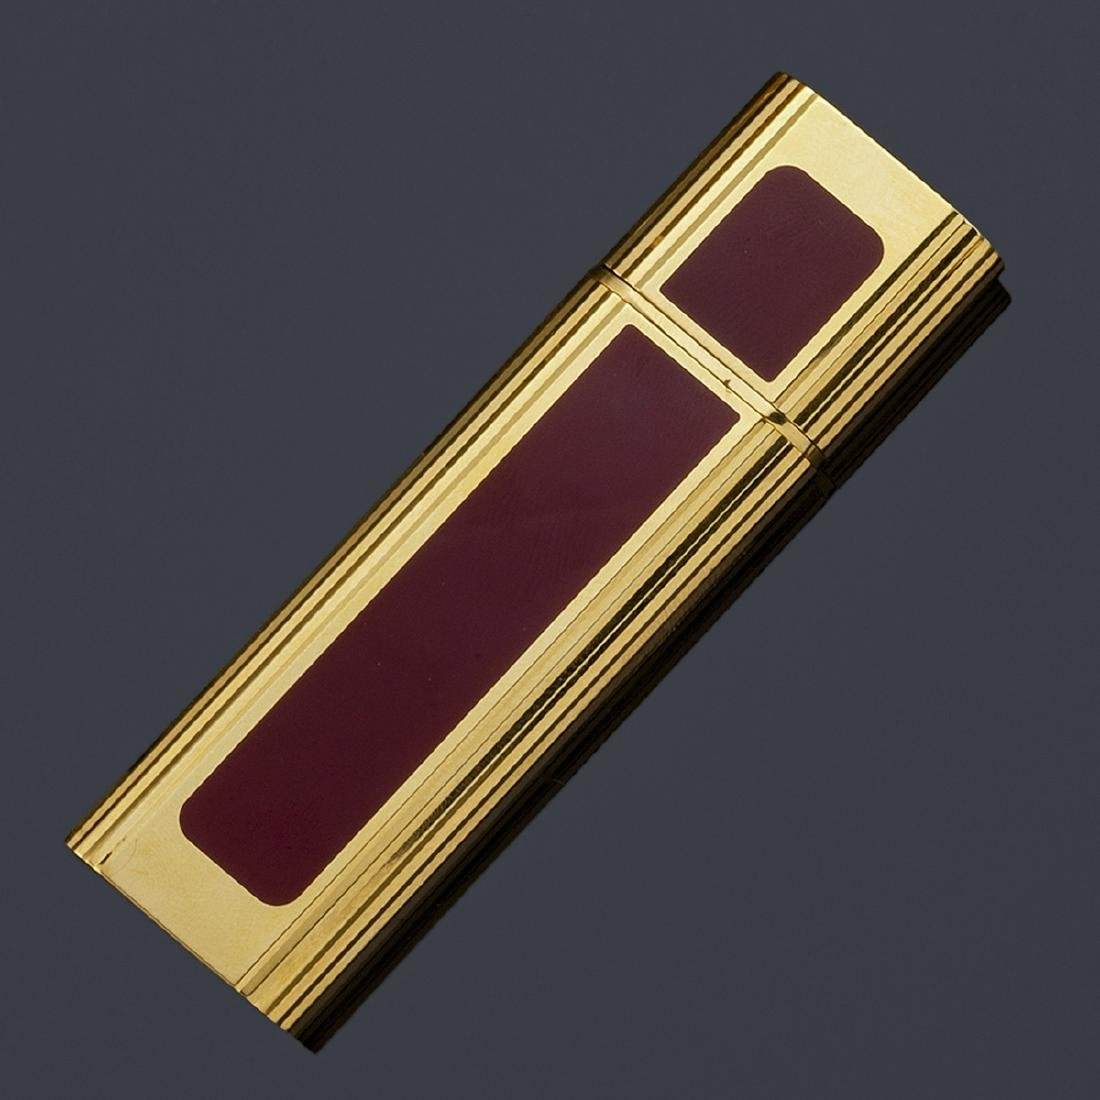 Cartier golden perfume bottle with maroon lacquer.